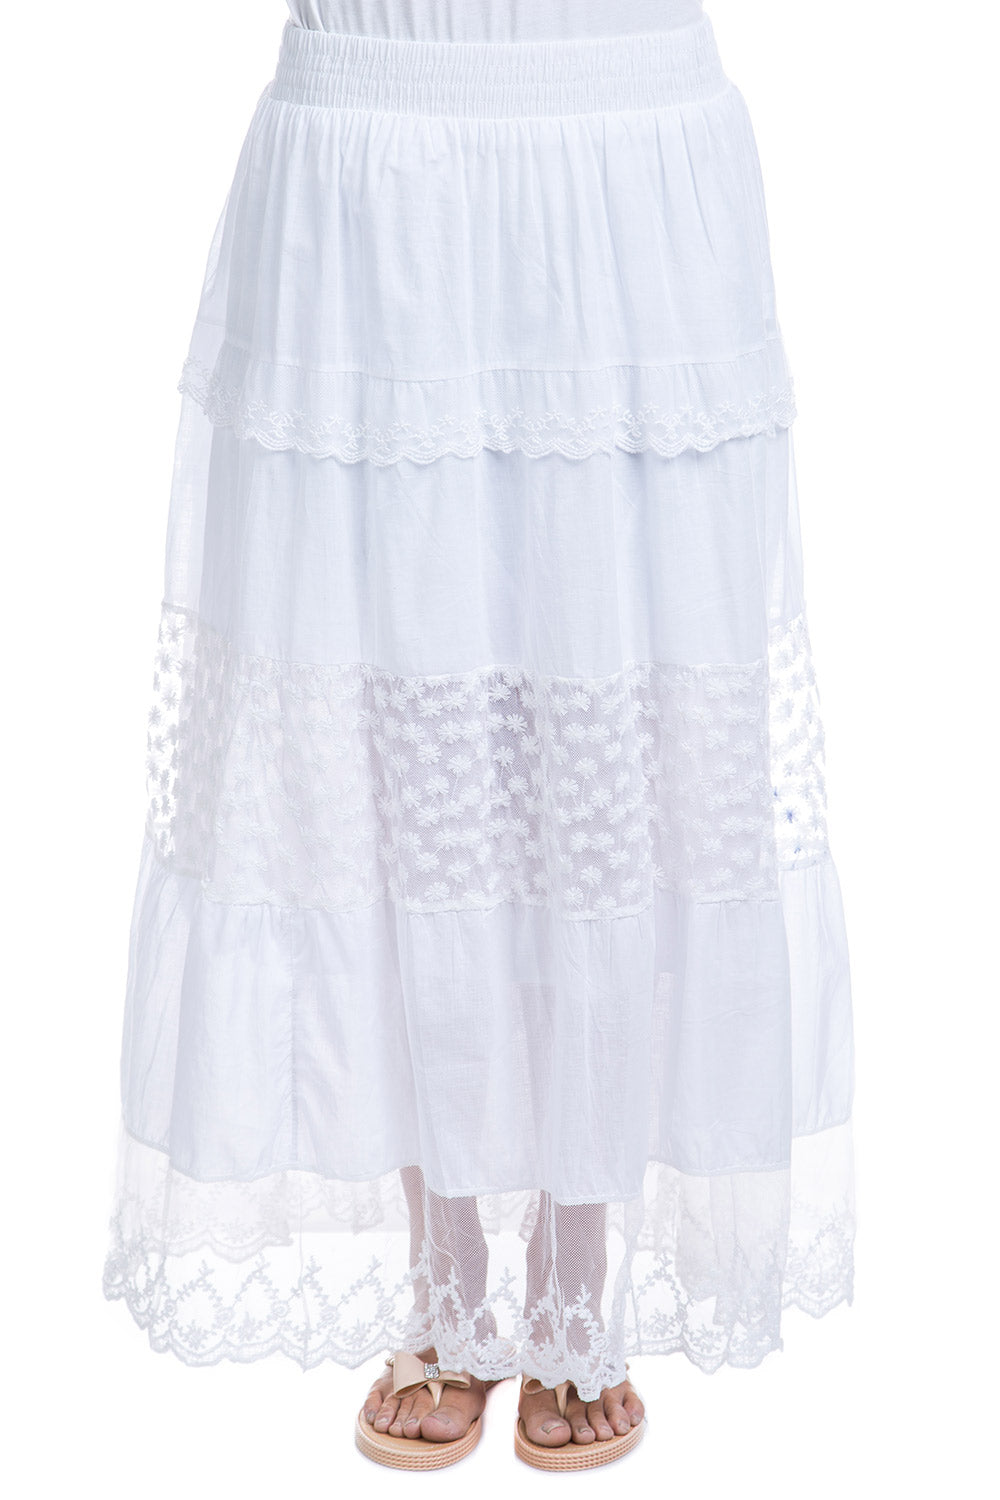 Type 1 All The Frills Skirt